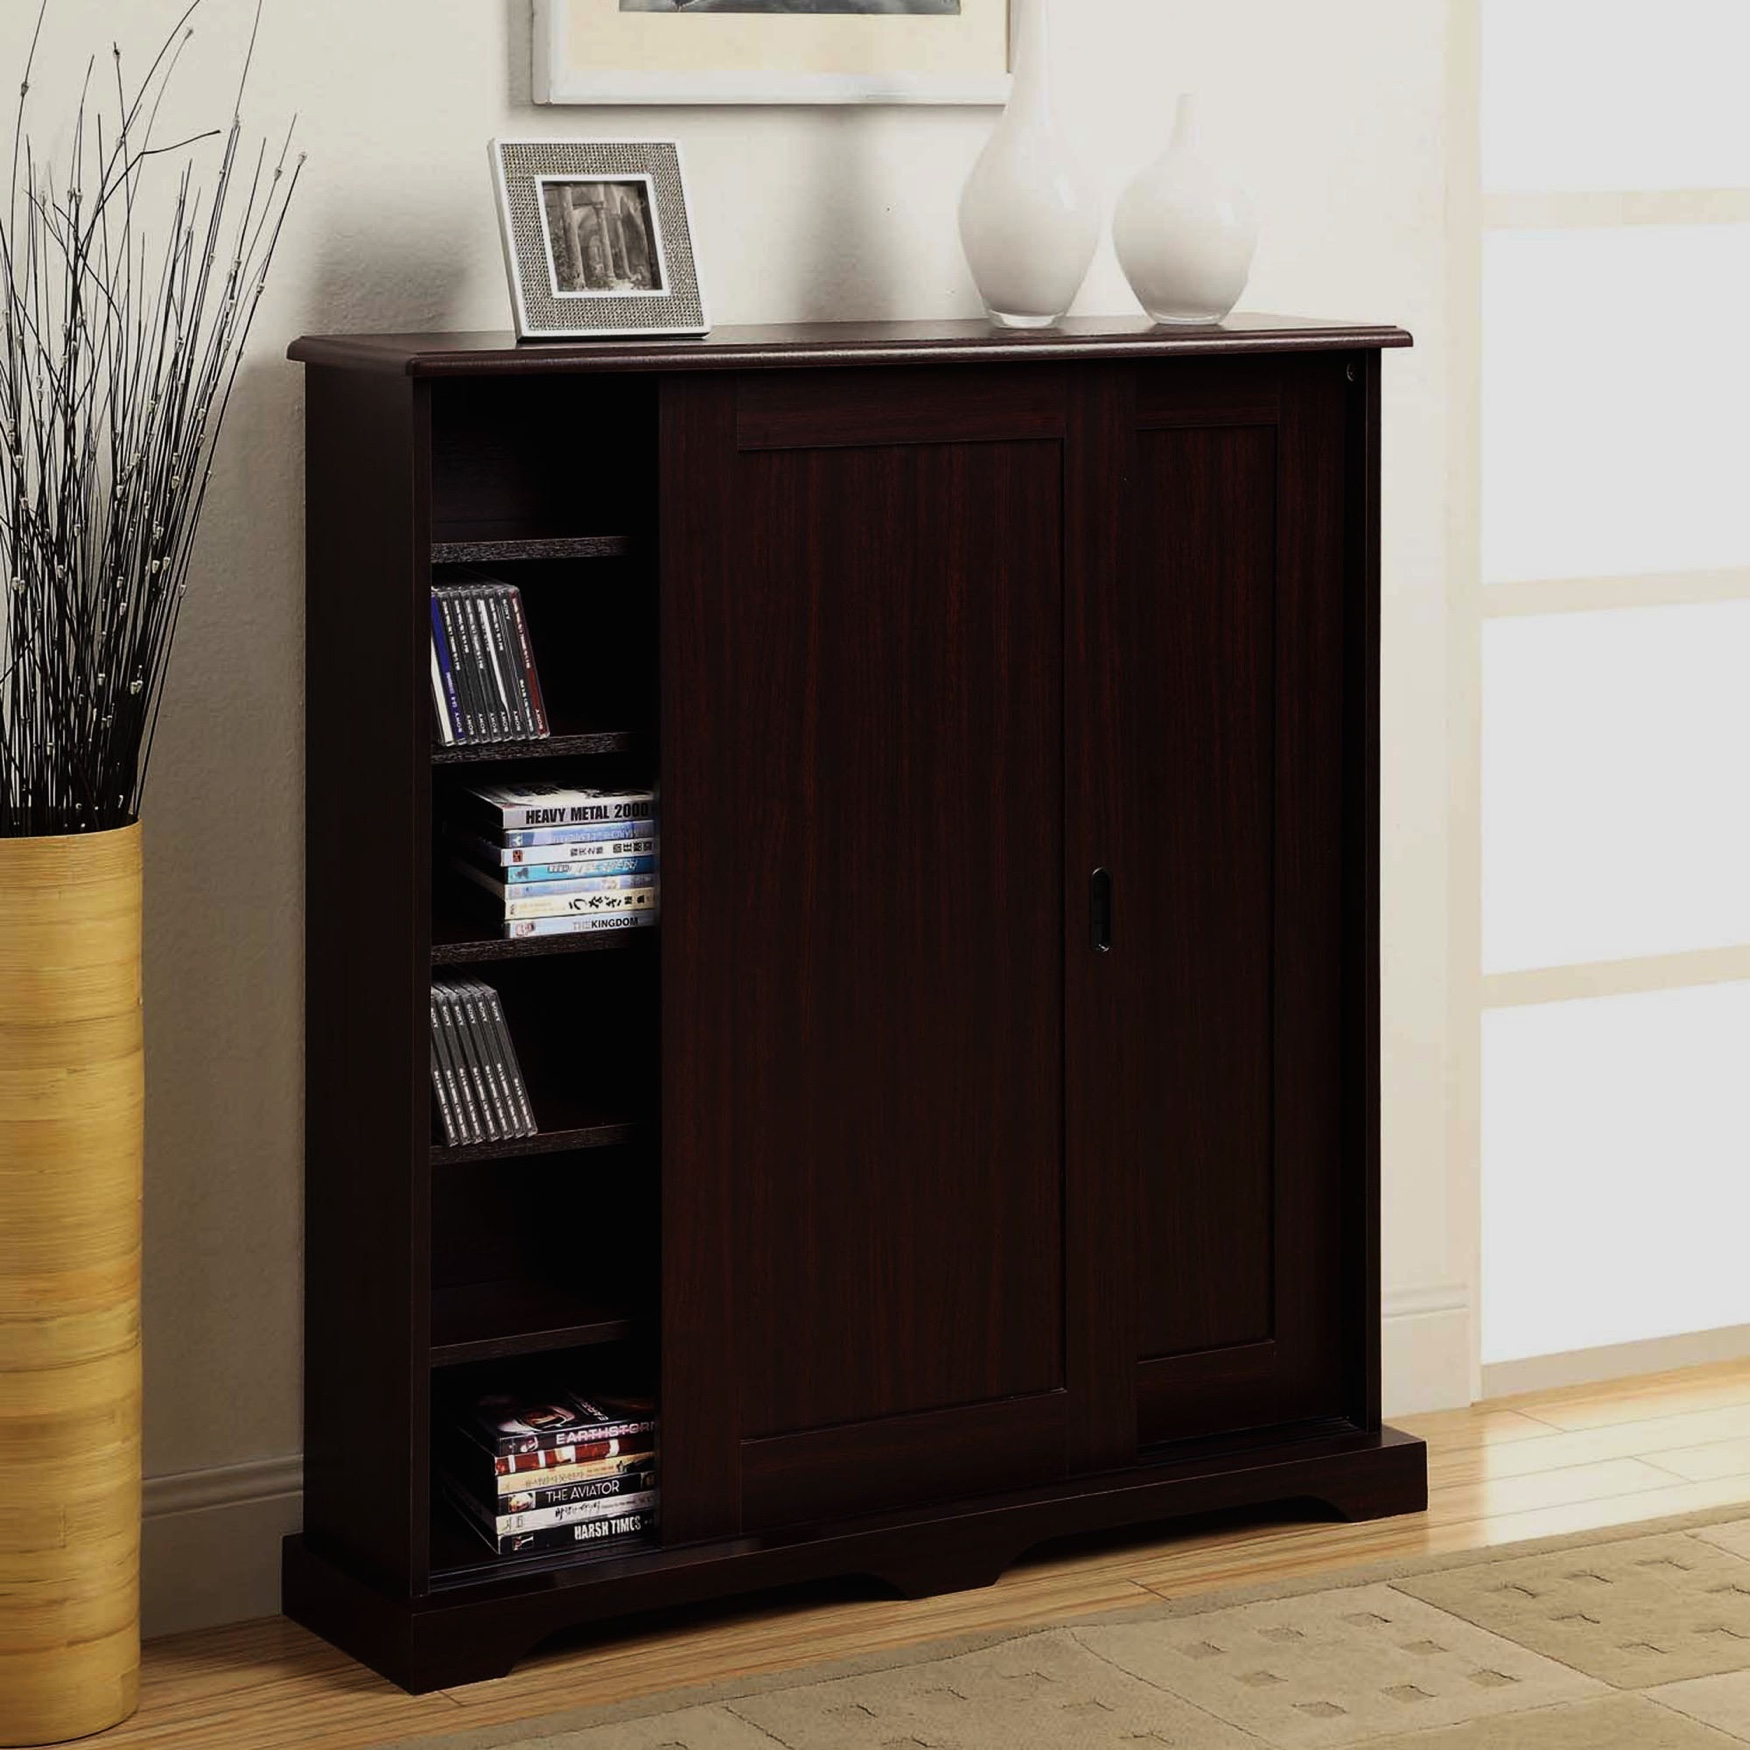 Sliding Door Multimedia Stand by 4D Concepts, DARK CHERRY